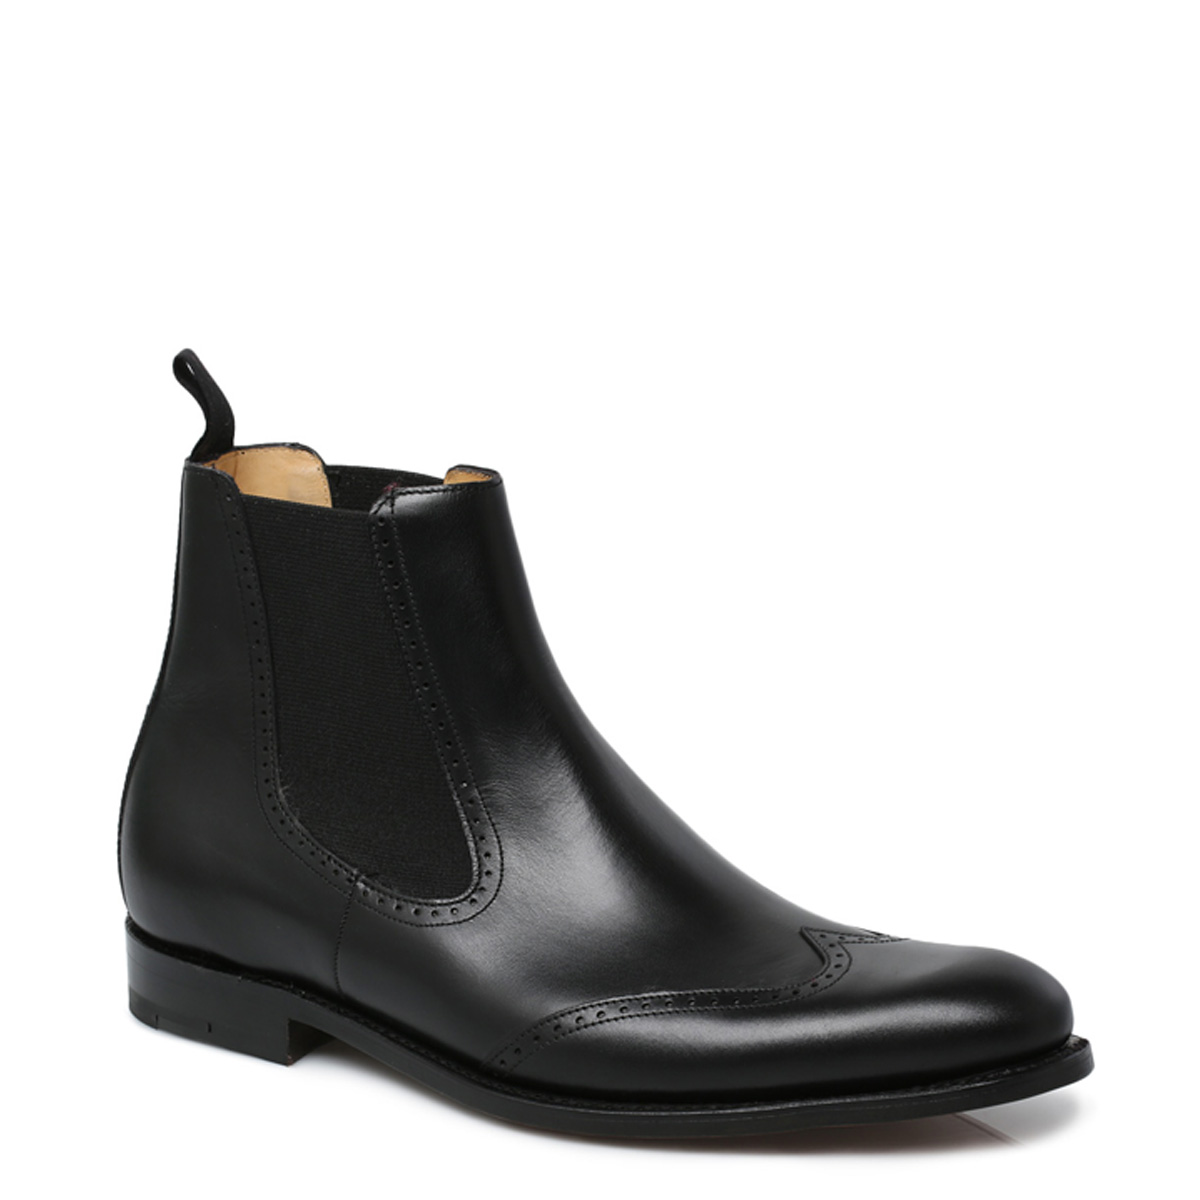 Ladies Chelsea Brogue Boots From Barker Shoes